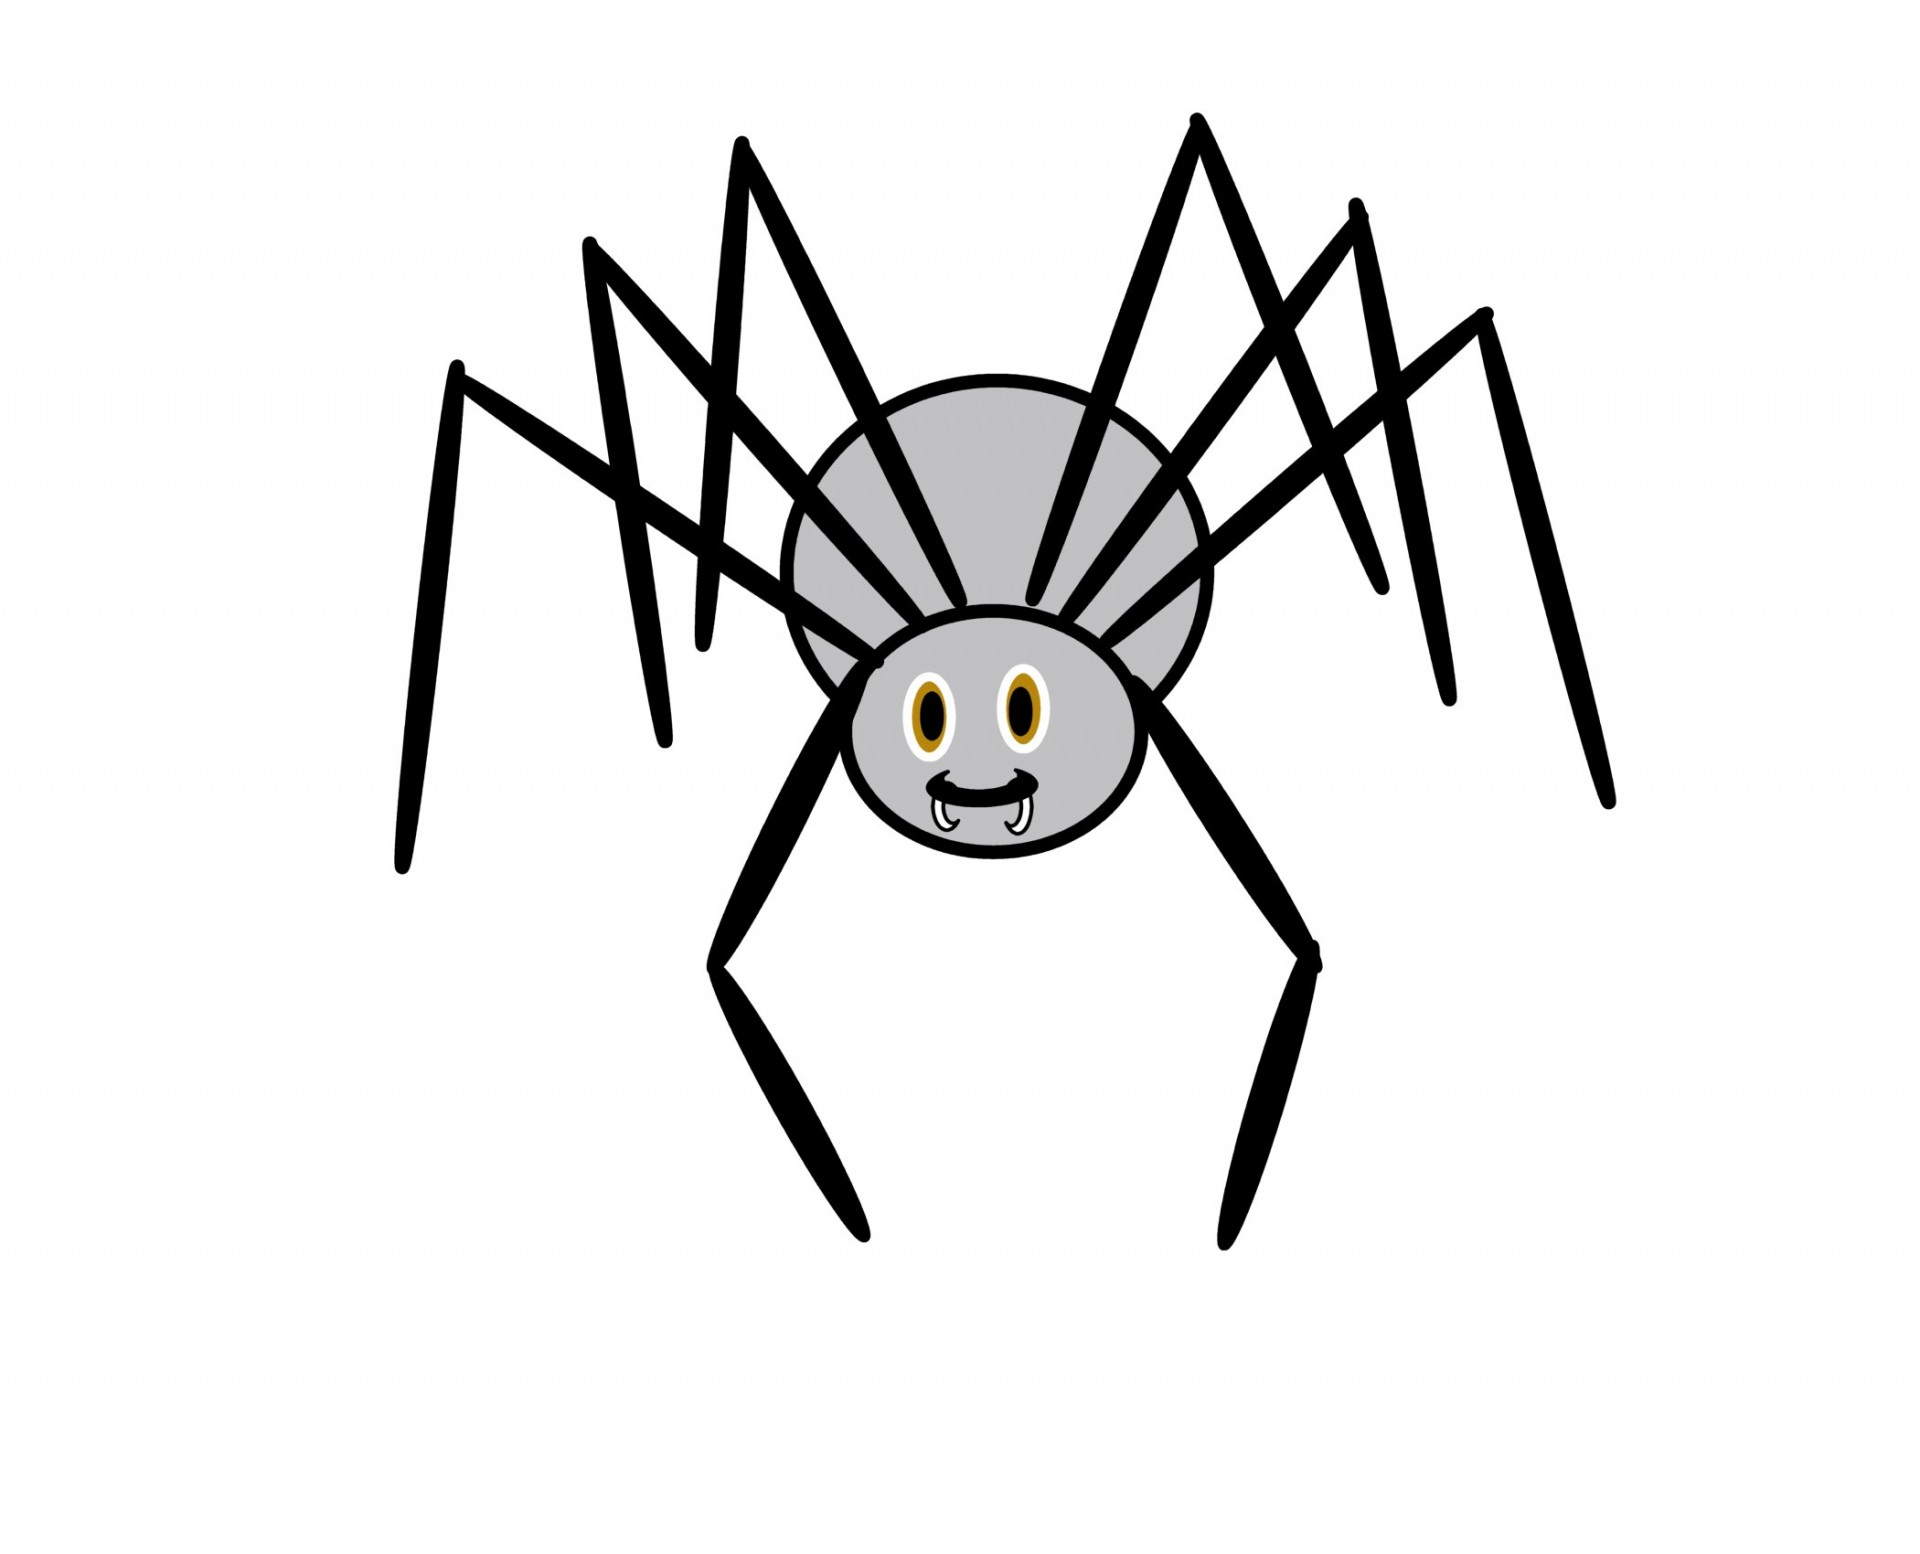 Free Spiders Cliparts, Download Free Clip Art, Free Clip Art.